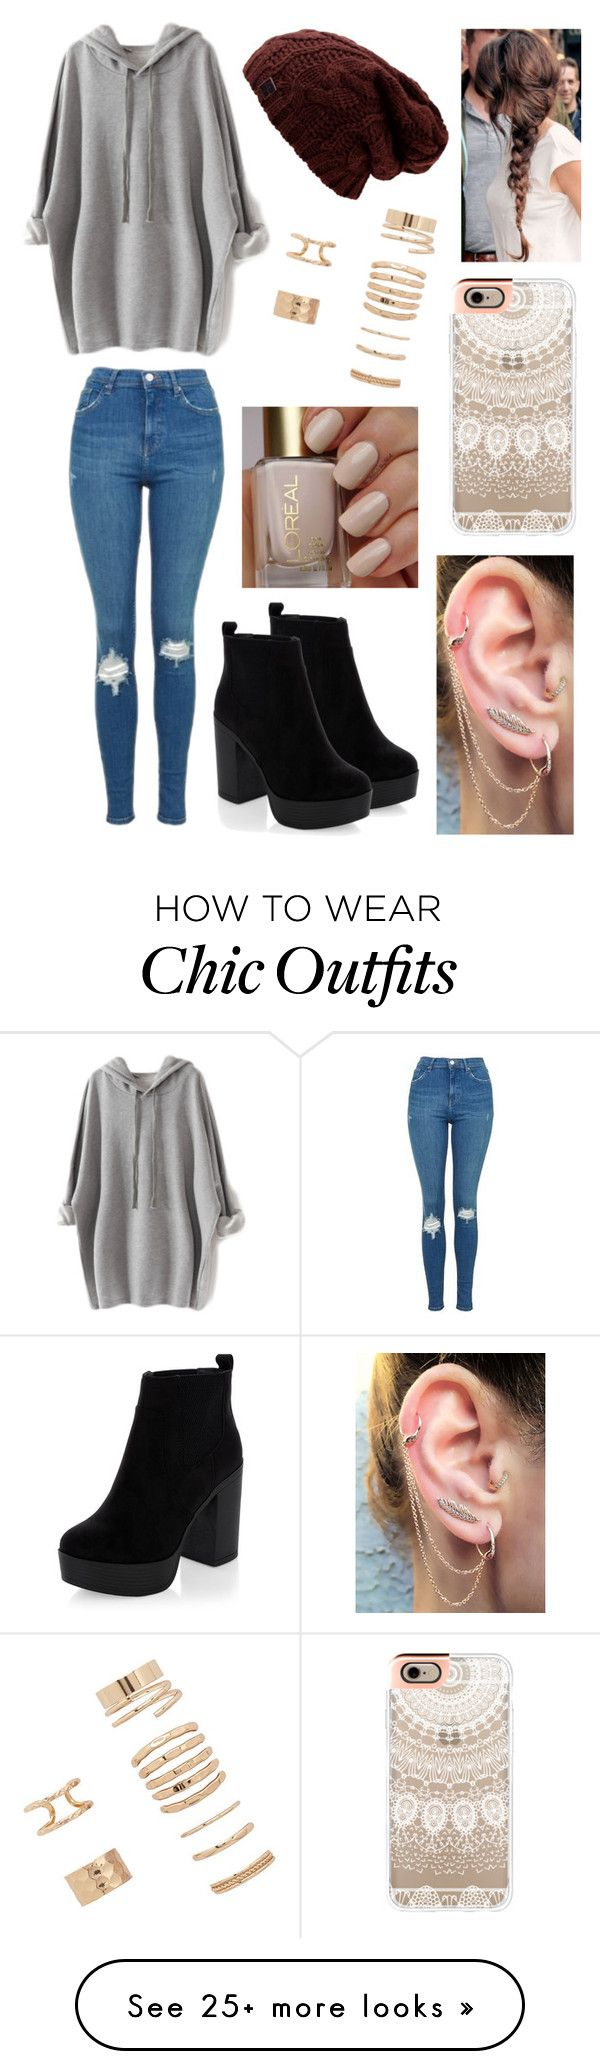 """Comfortable and cute"" by jenn-tomlinson on Polyvore featuring New Look, Topshop, Forever 21 and Casetify"